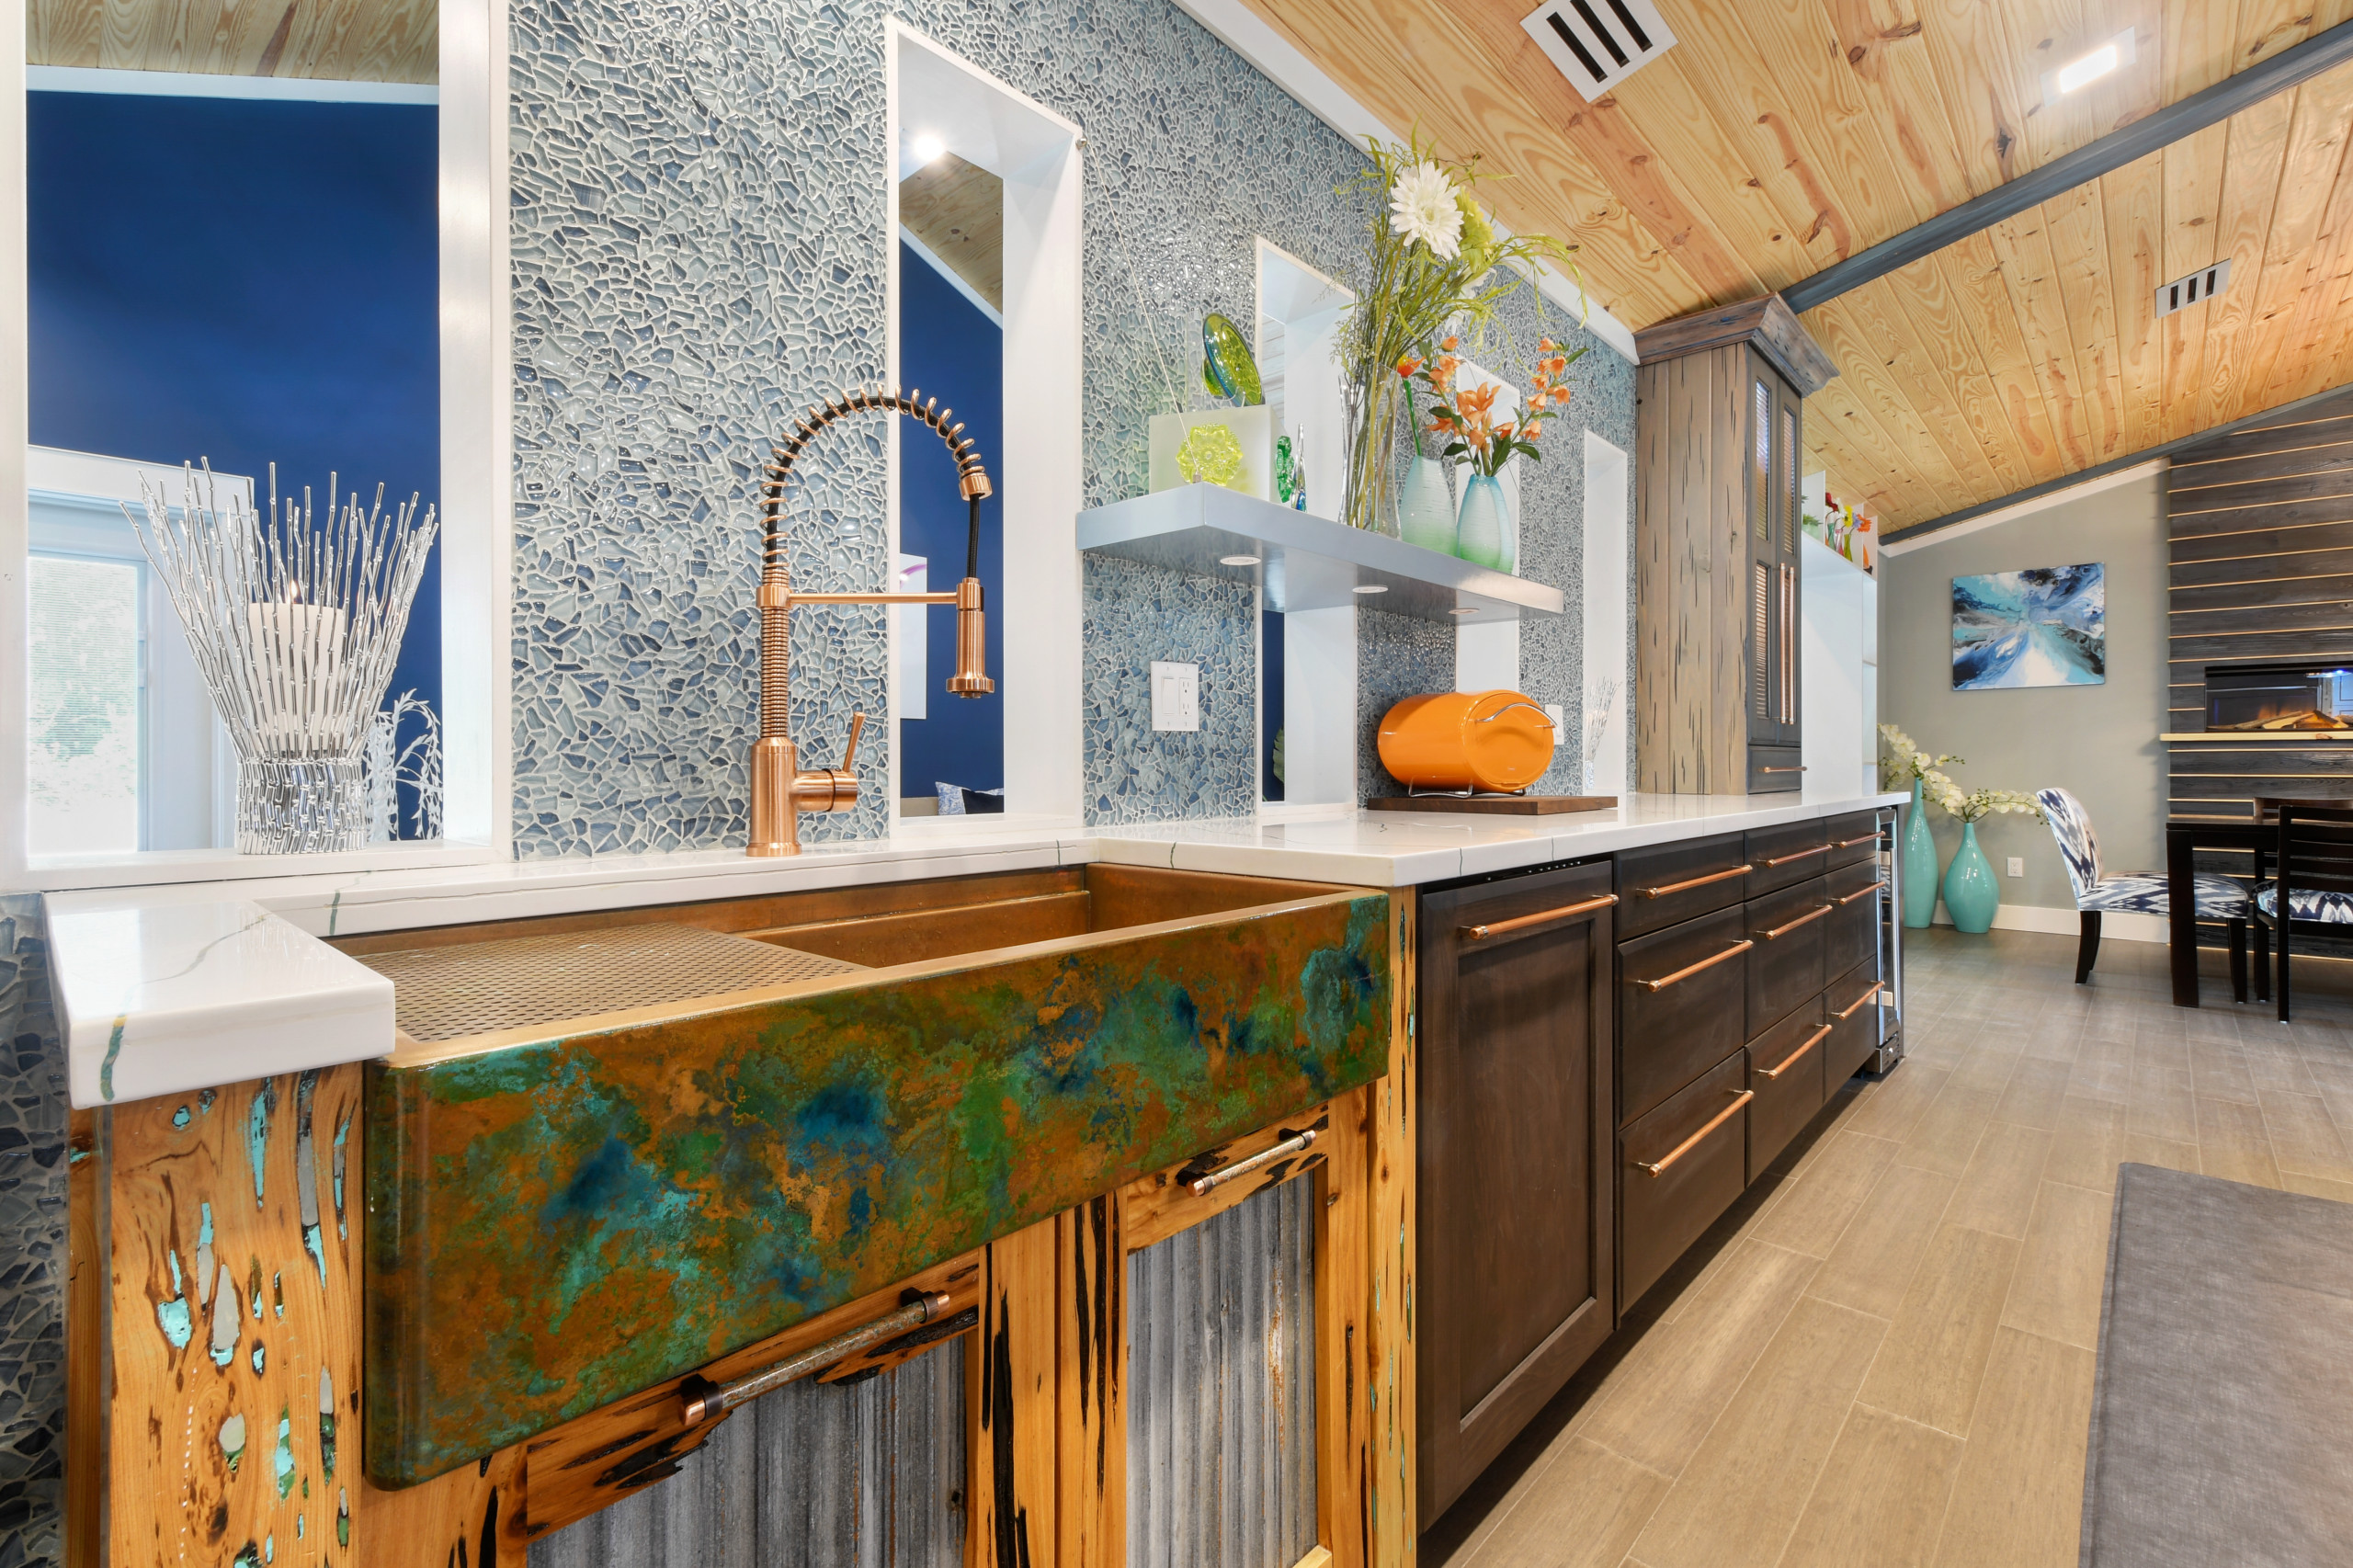 Patina sink / Beach blue backsplash